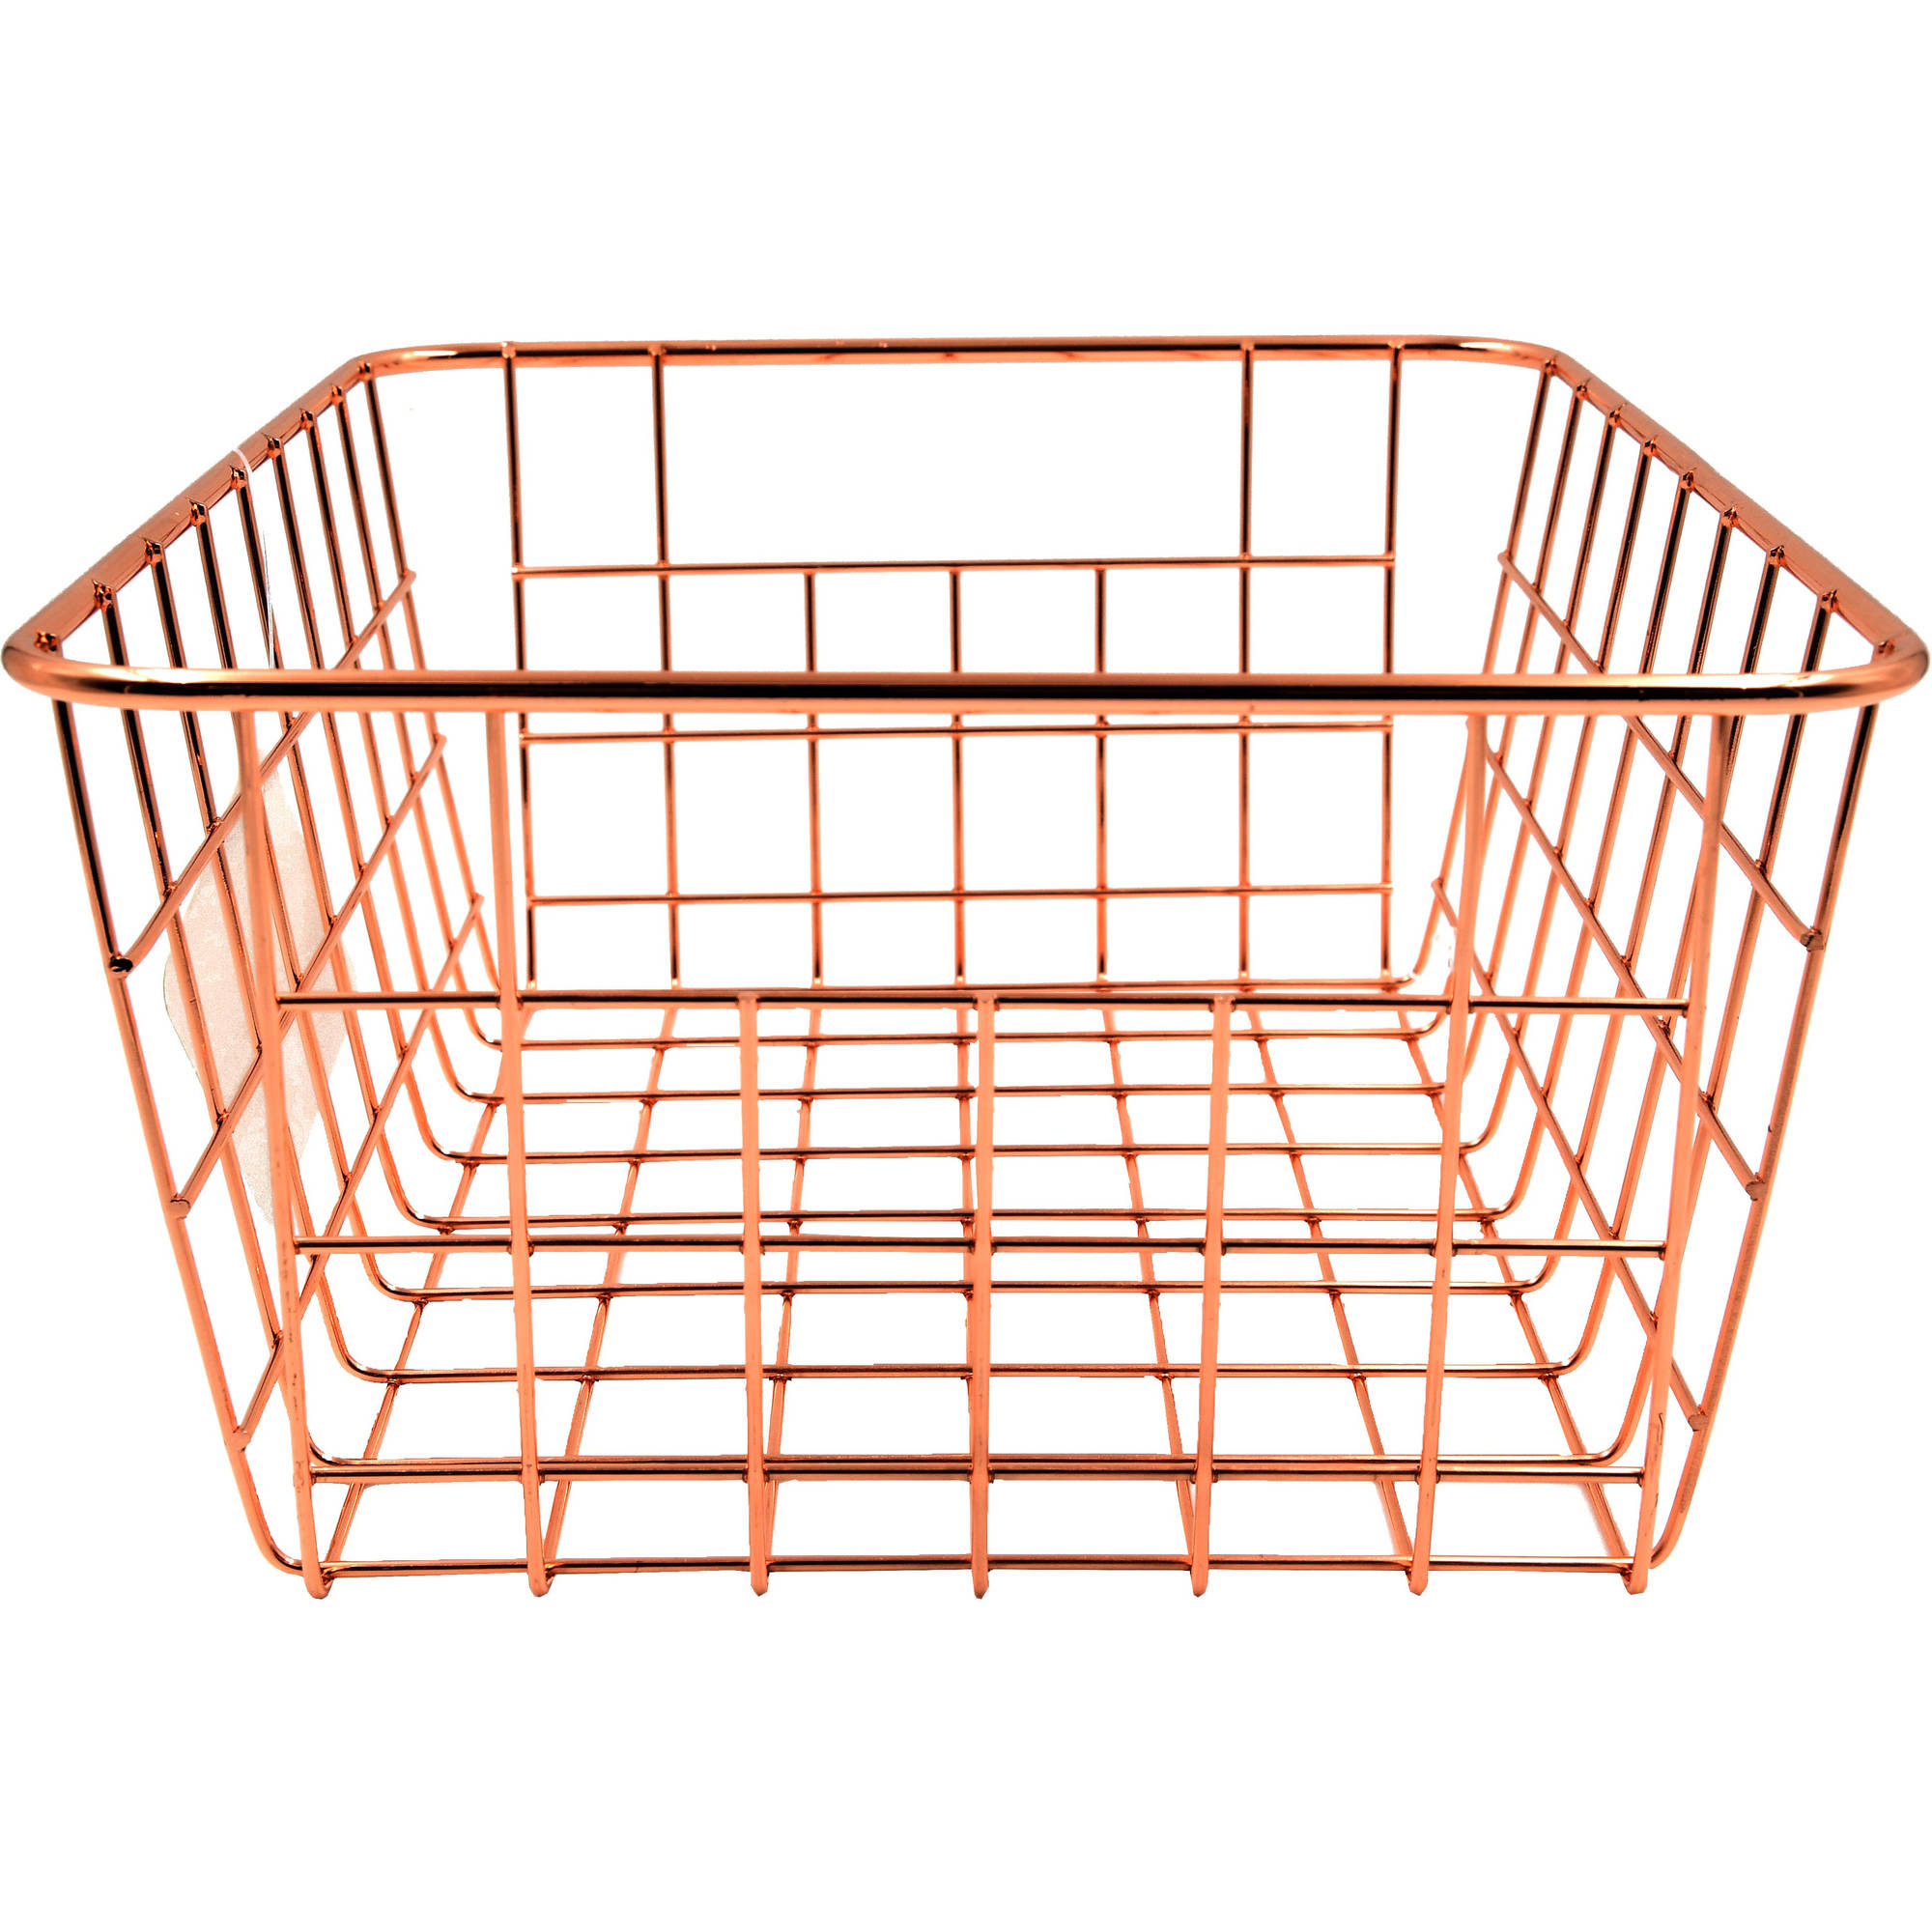 The Mainstays Rose Gold Classic Wire Storage Basket, Carbon Steel